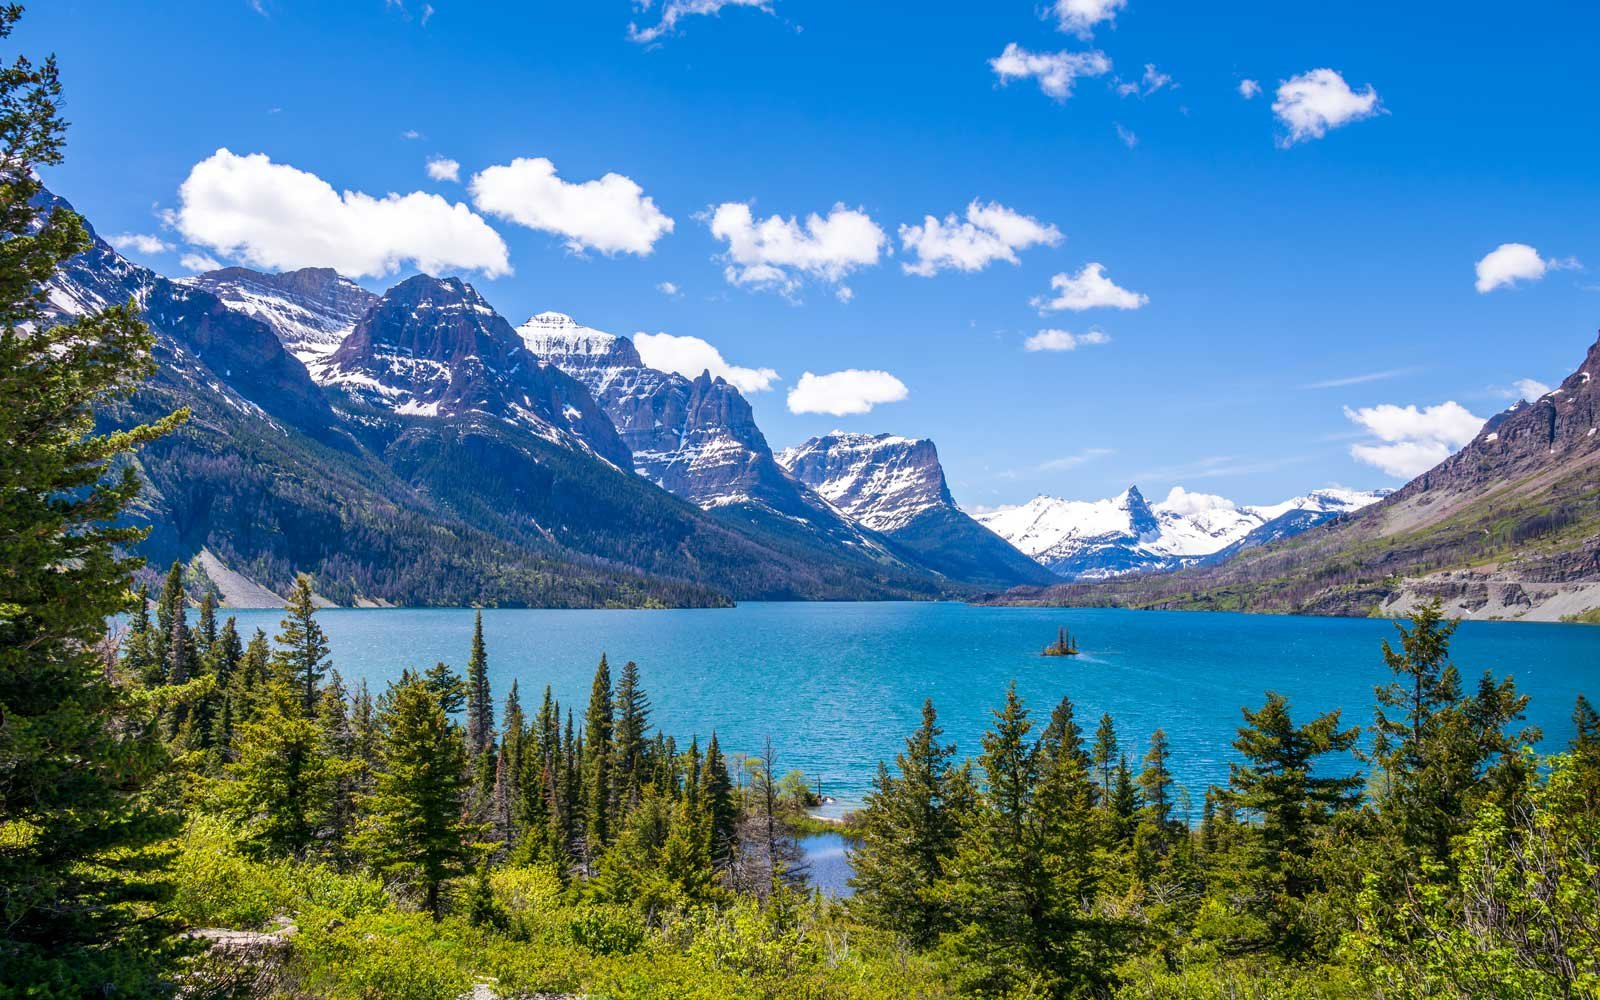 Visit a National Park this Summer